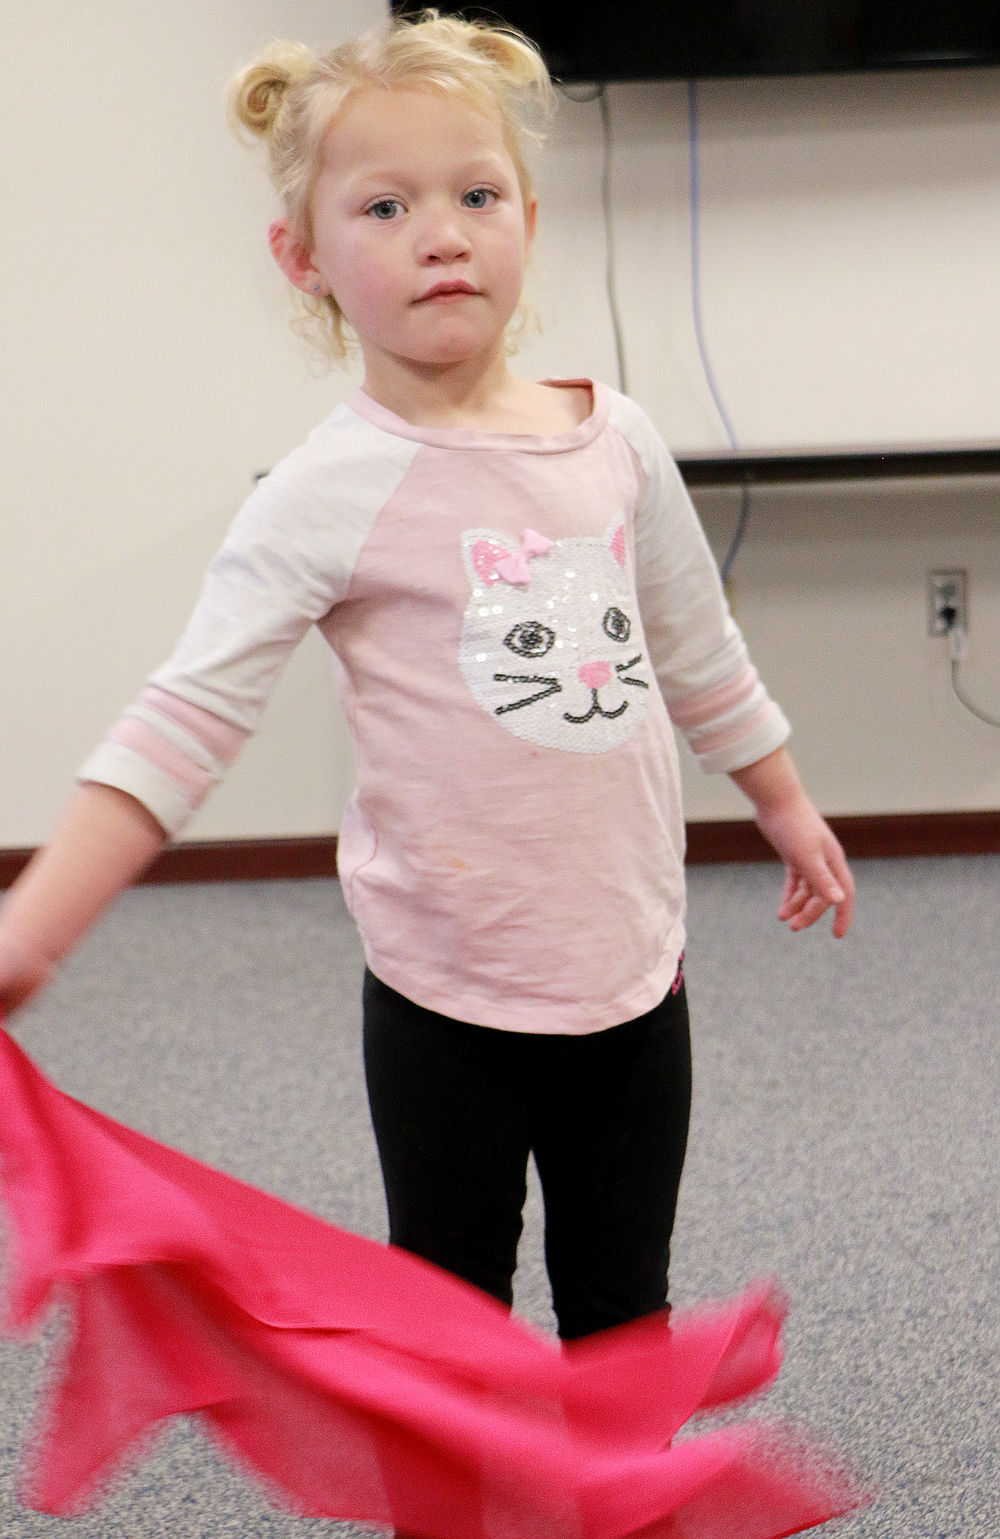 Morrill preschool implements Zumbini to develop students' social and cognitive skills